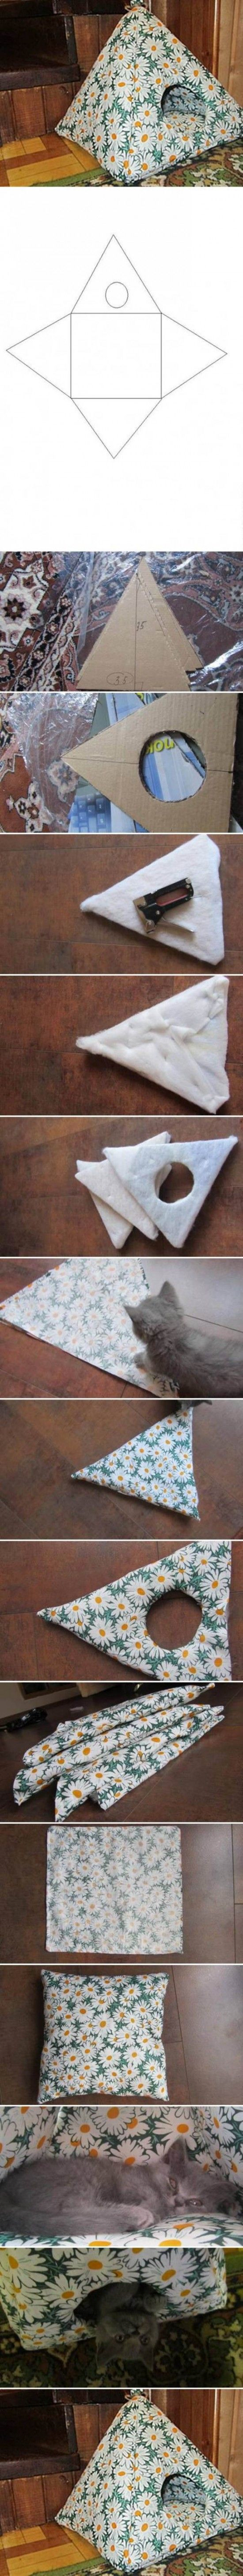 DIY tent. For large animals or can hang in cage for small animals.